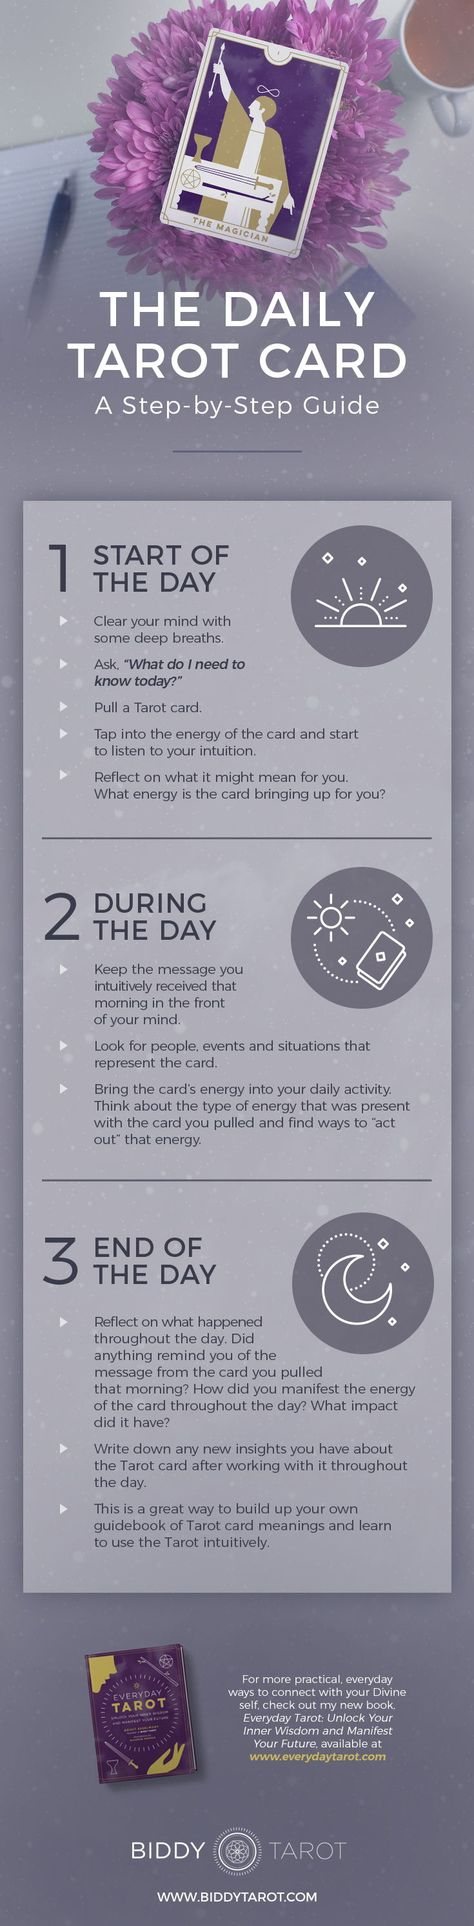 One of my favourite ways to tap into my intuition - and learn to trust what comes up - is an exercise called the Daily Tarot Card, where you do just what it sounds like: pull one card every day for yourself and see what kind of guidance you get from it. Try this ritual from Everyday Tarot or learn more at biddytarot.com